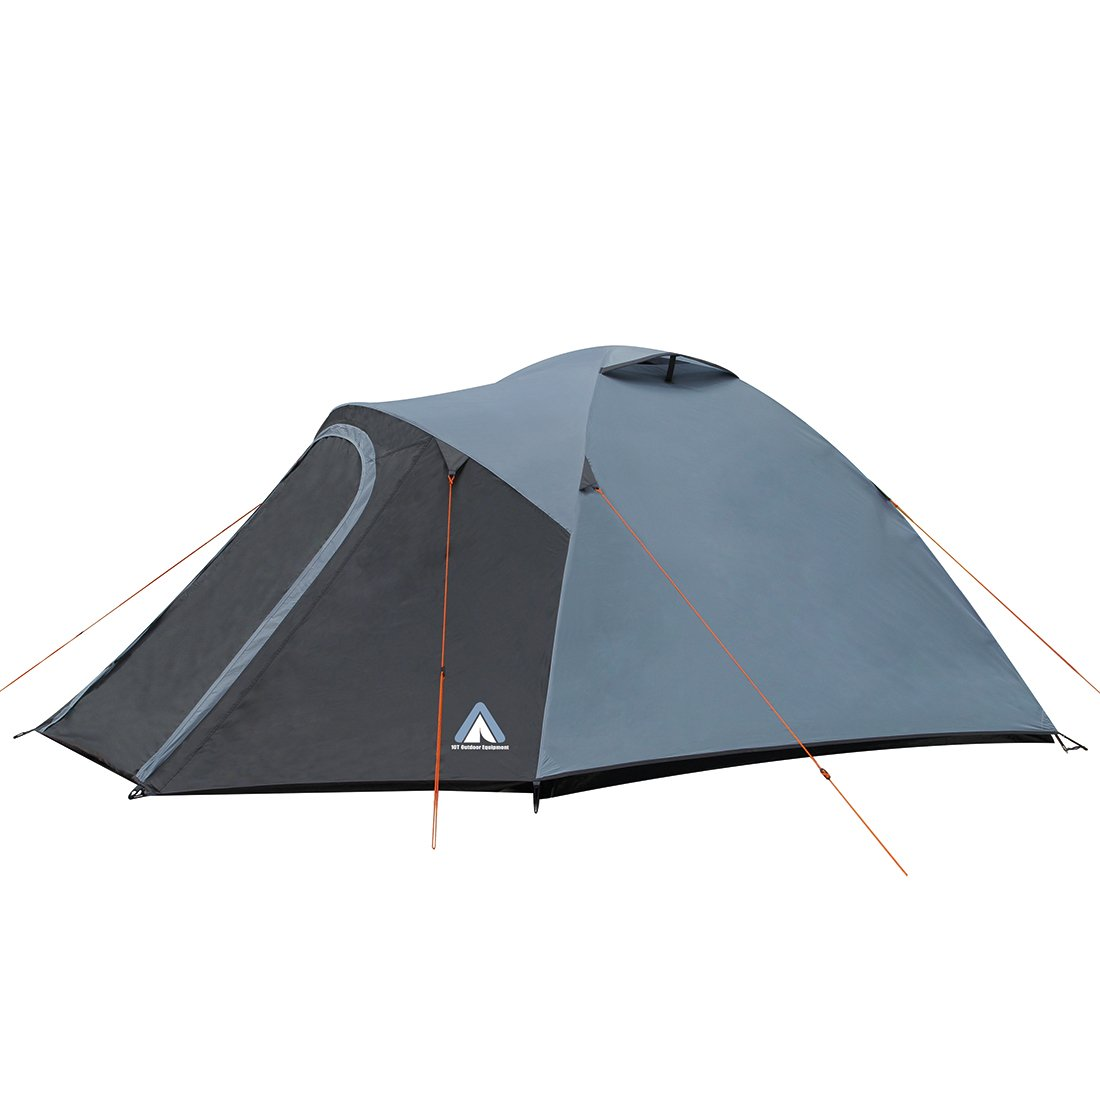 10T Outdoor Equipment Malaga 3 Zelt, Blau, 310 x 230 x 130 cm